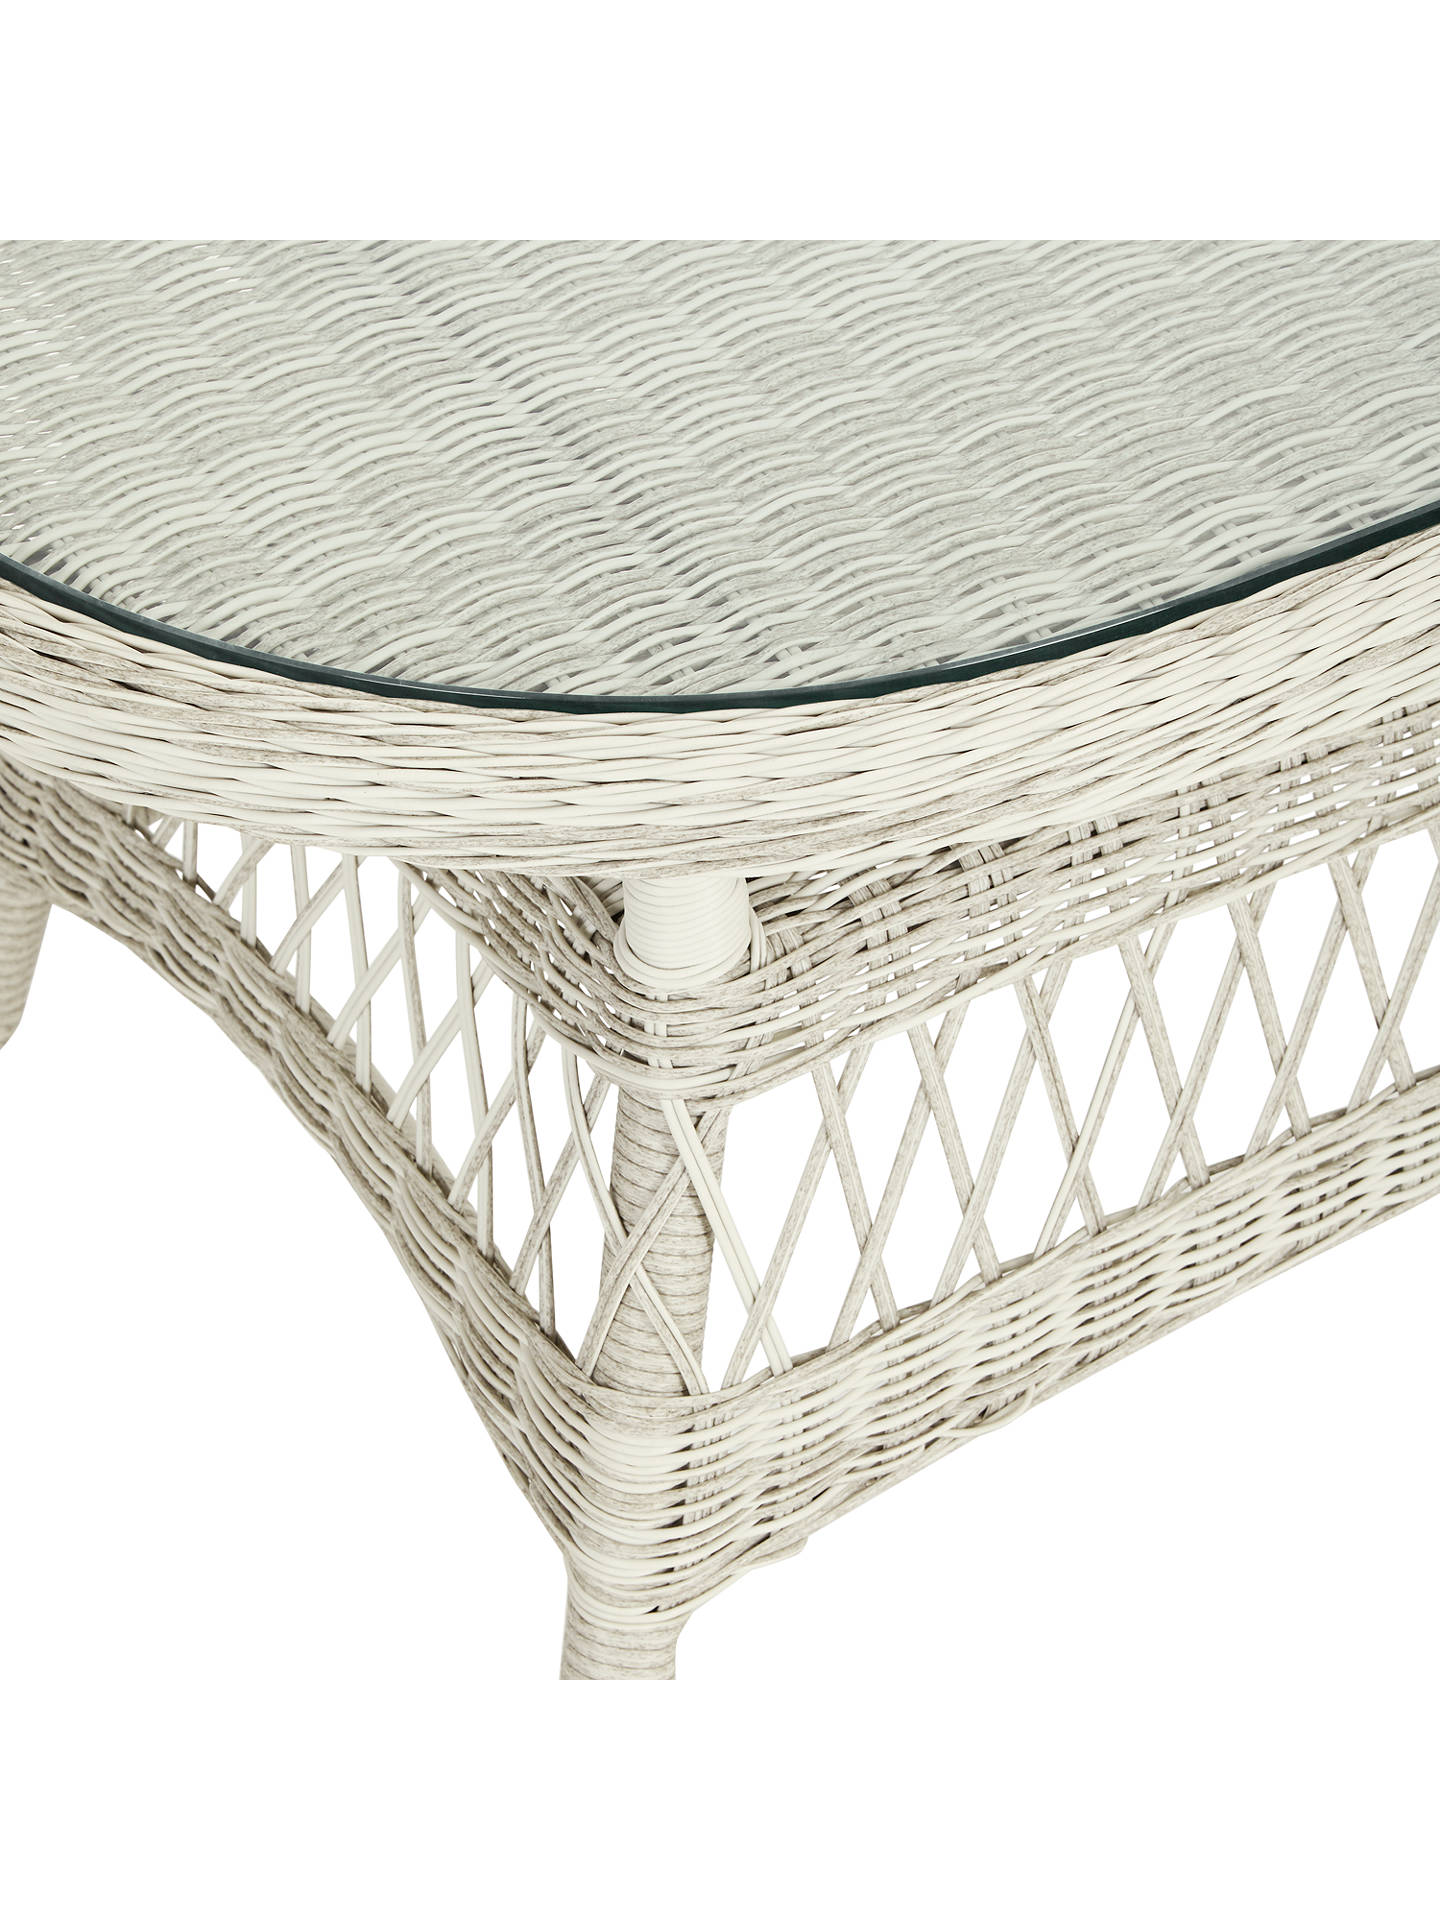 BuyJohn Lewis & Partners Hera Wicker Coffee Table Online at johnlewis.com